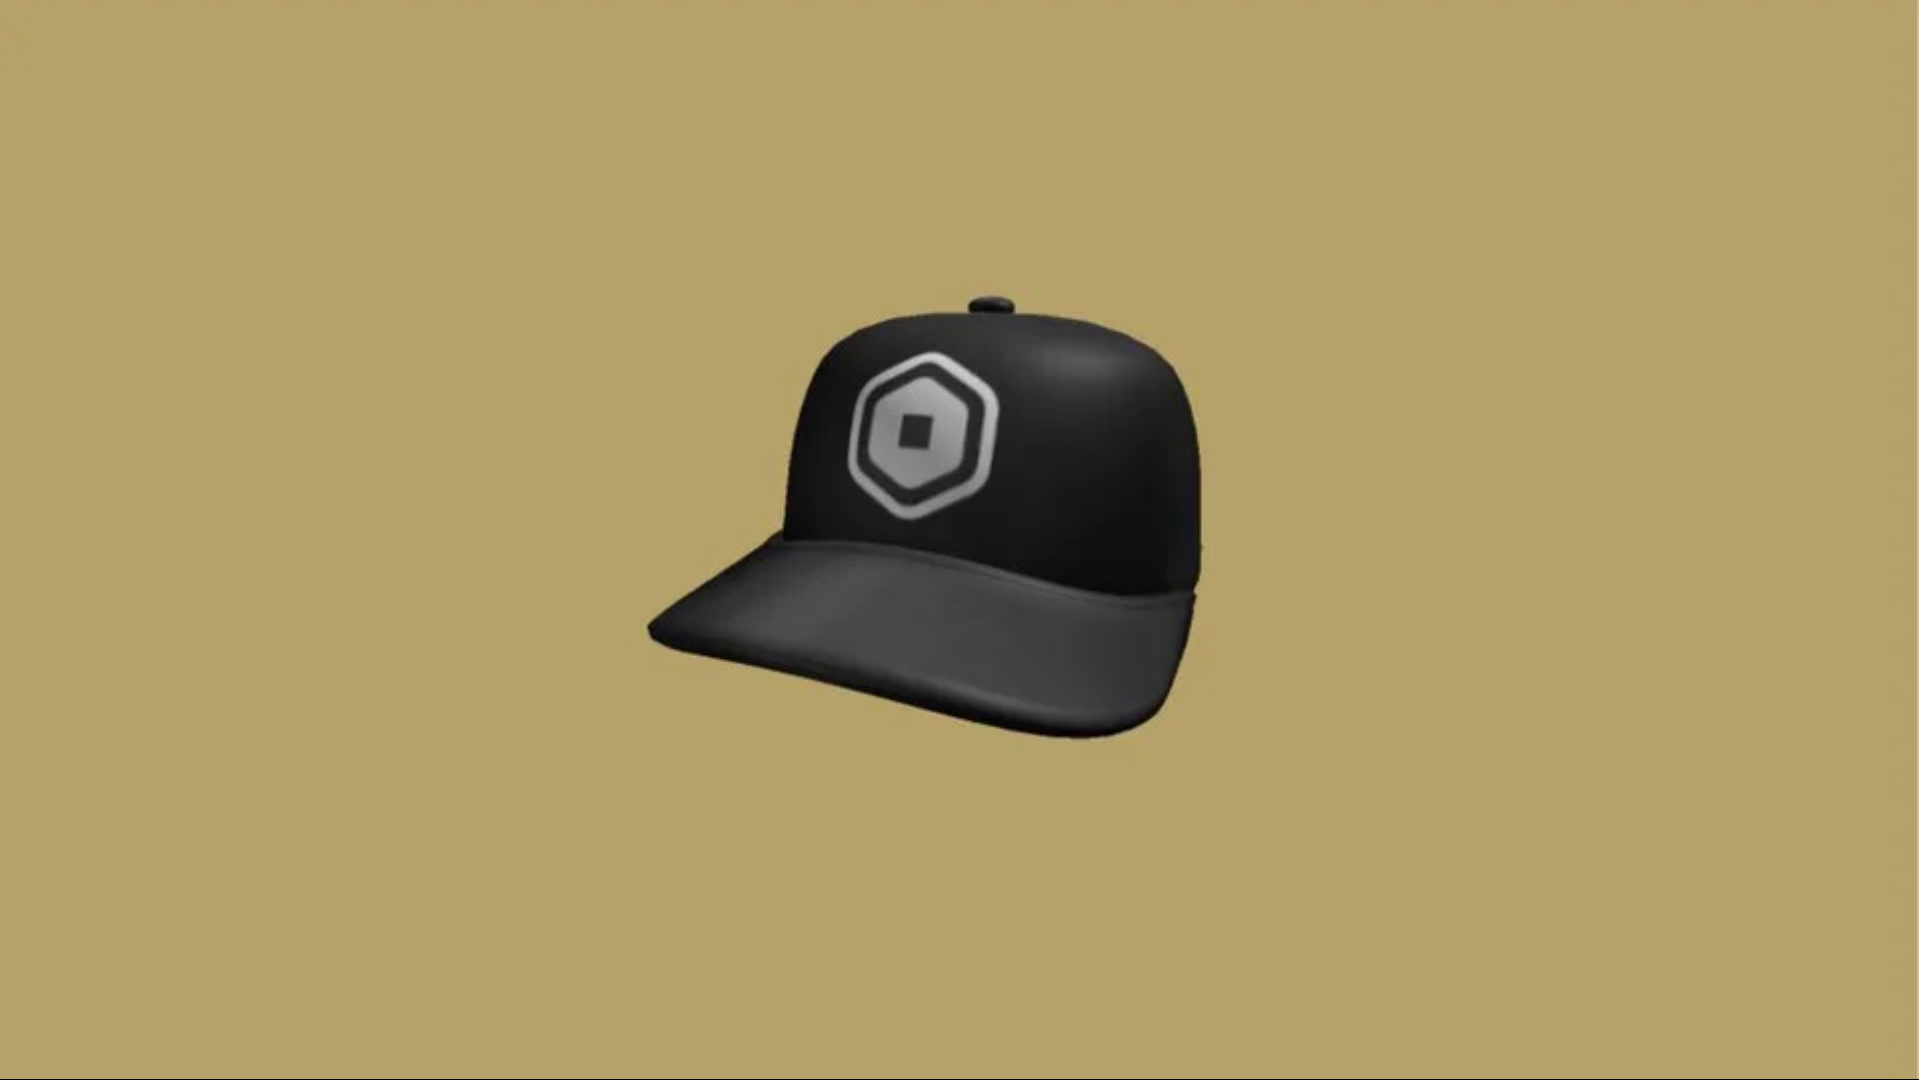 How To Unlock The Robux Hat In Roblox